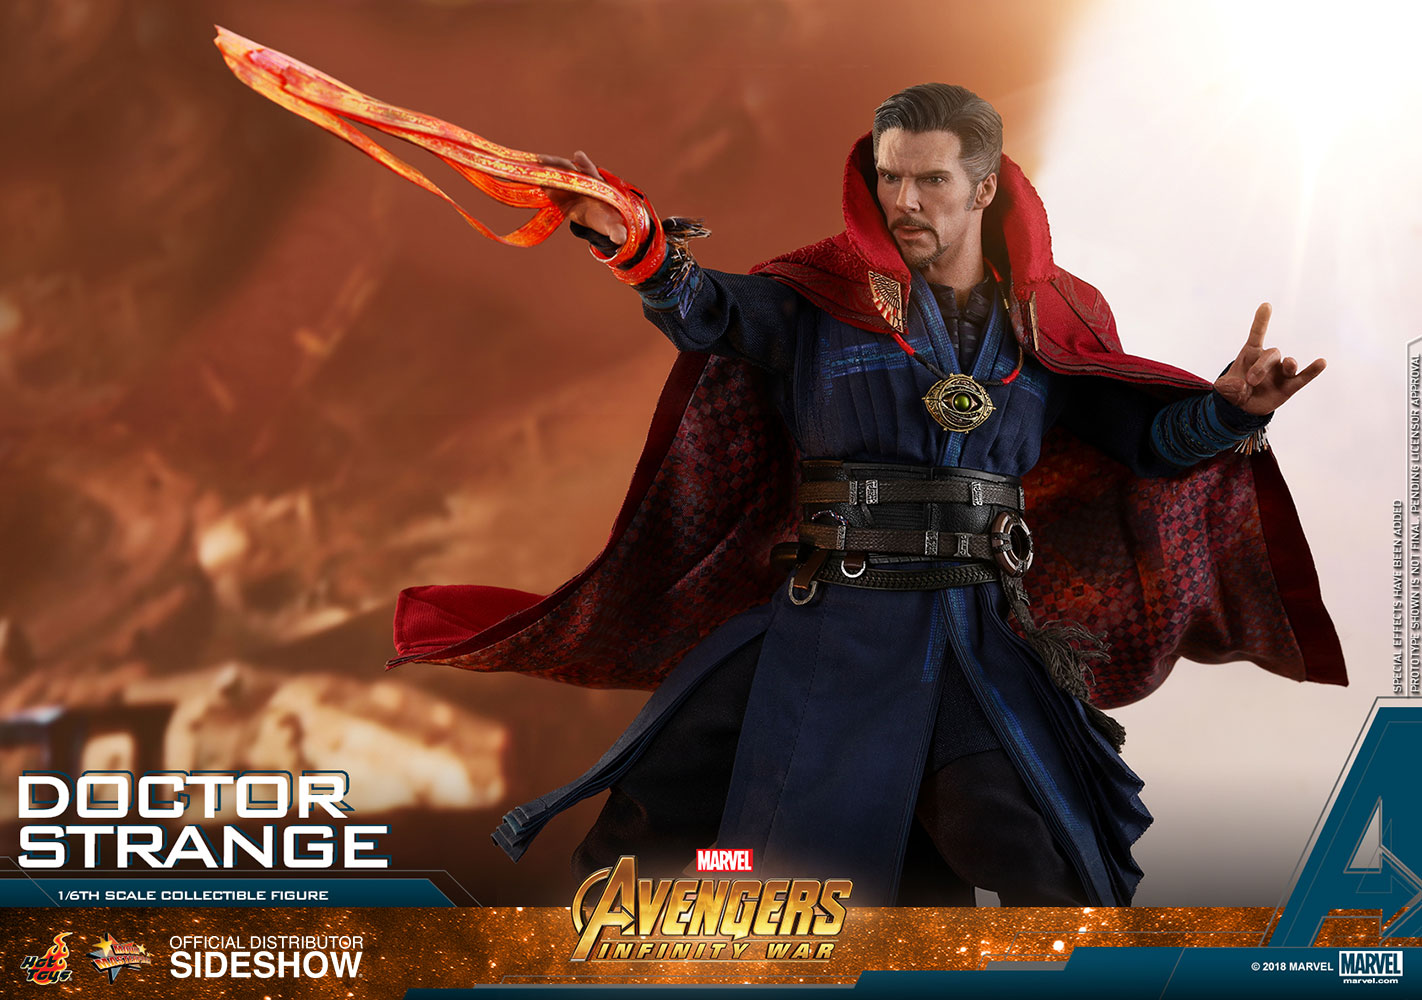 hottoys吧_Hot Toys Infinity War Doctor Strange Sixth Scale Figure Available For Pre-Order! - GWW